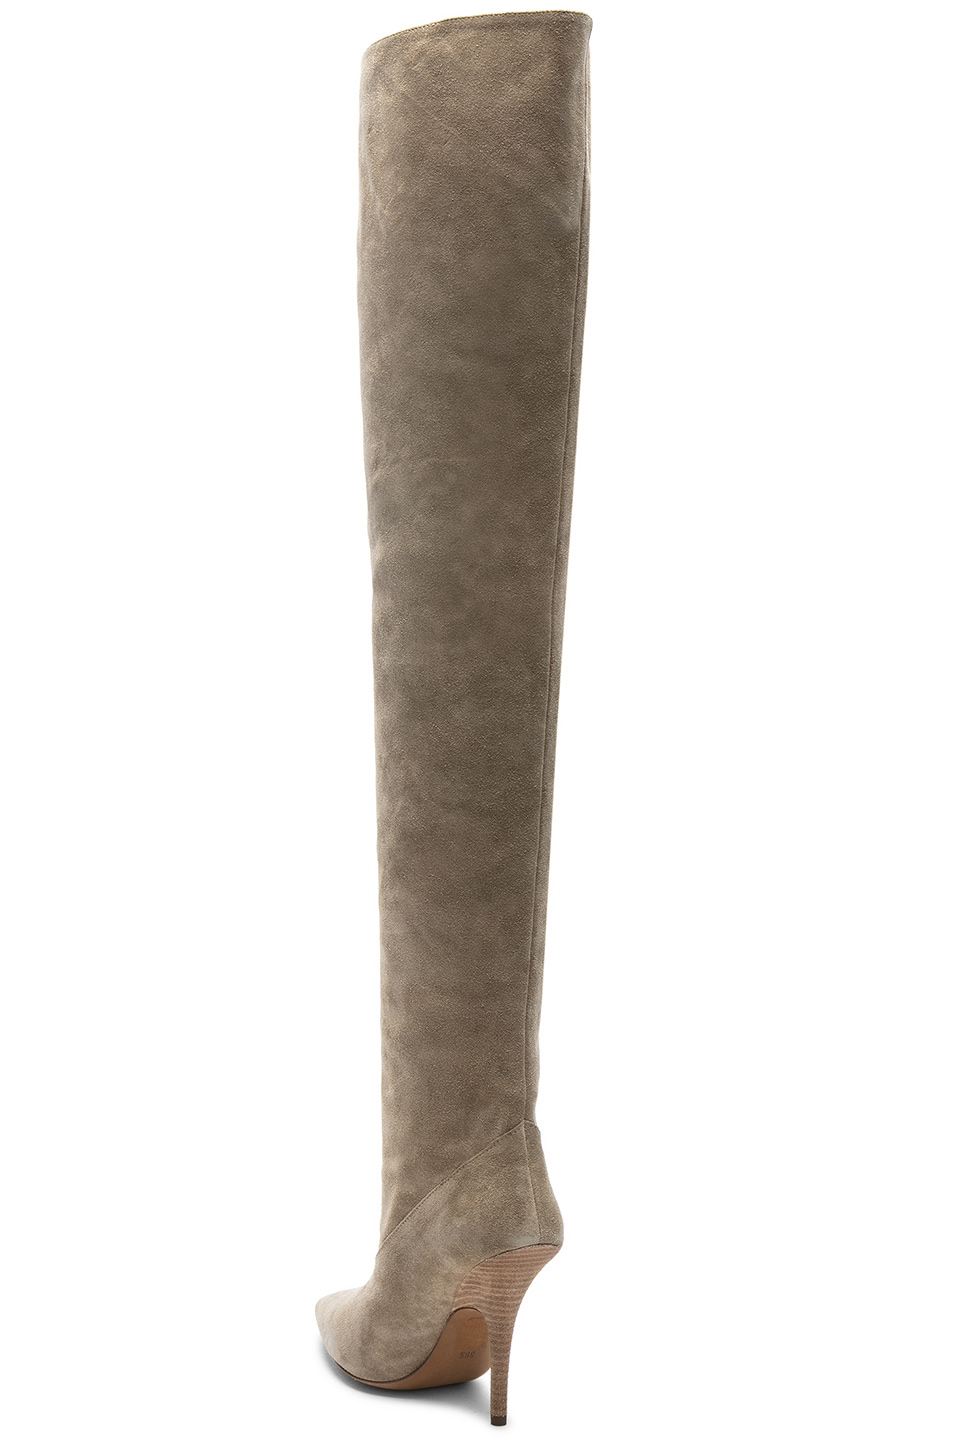 a1ff0cd27f7 YEEZY Season 5 Suede Tubular Thigh High Boots in Taupe | FWRD